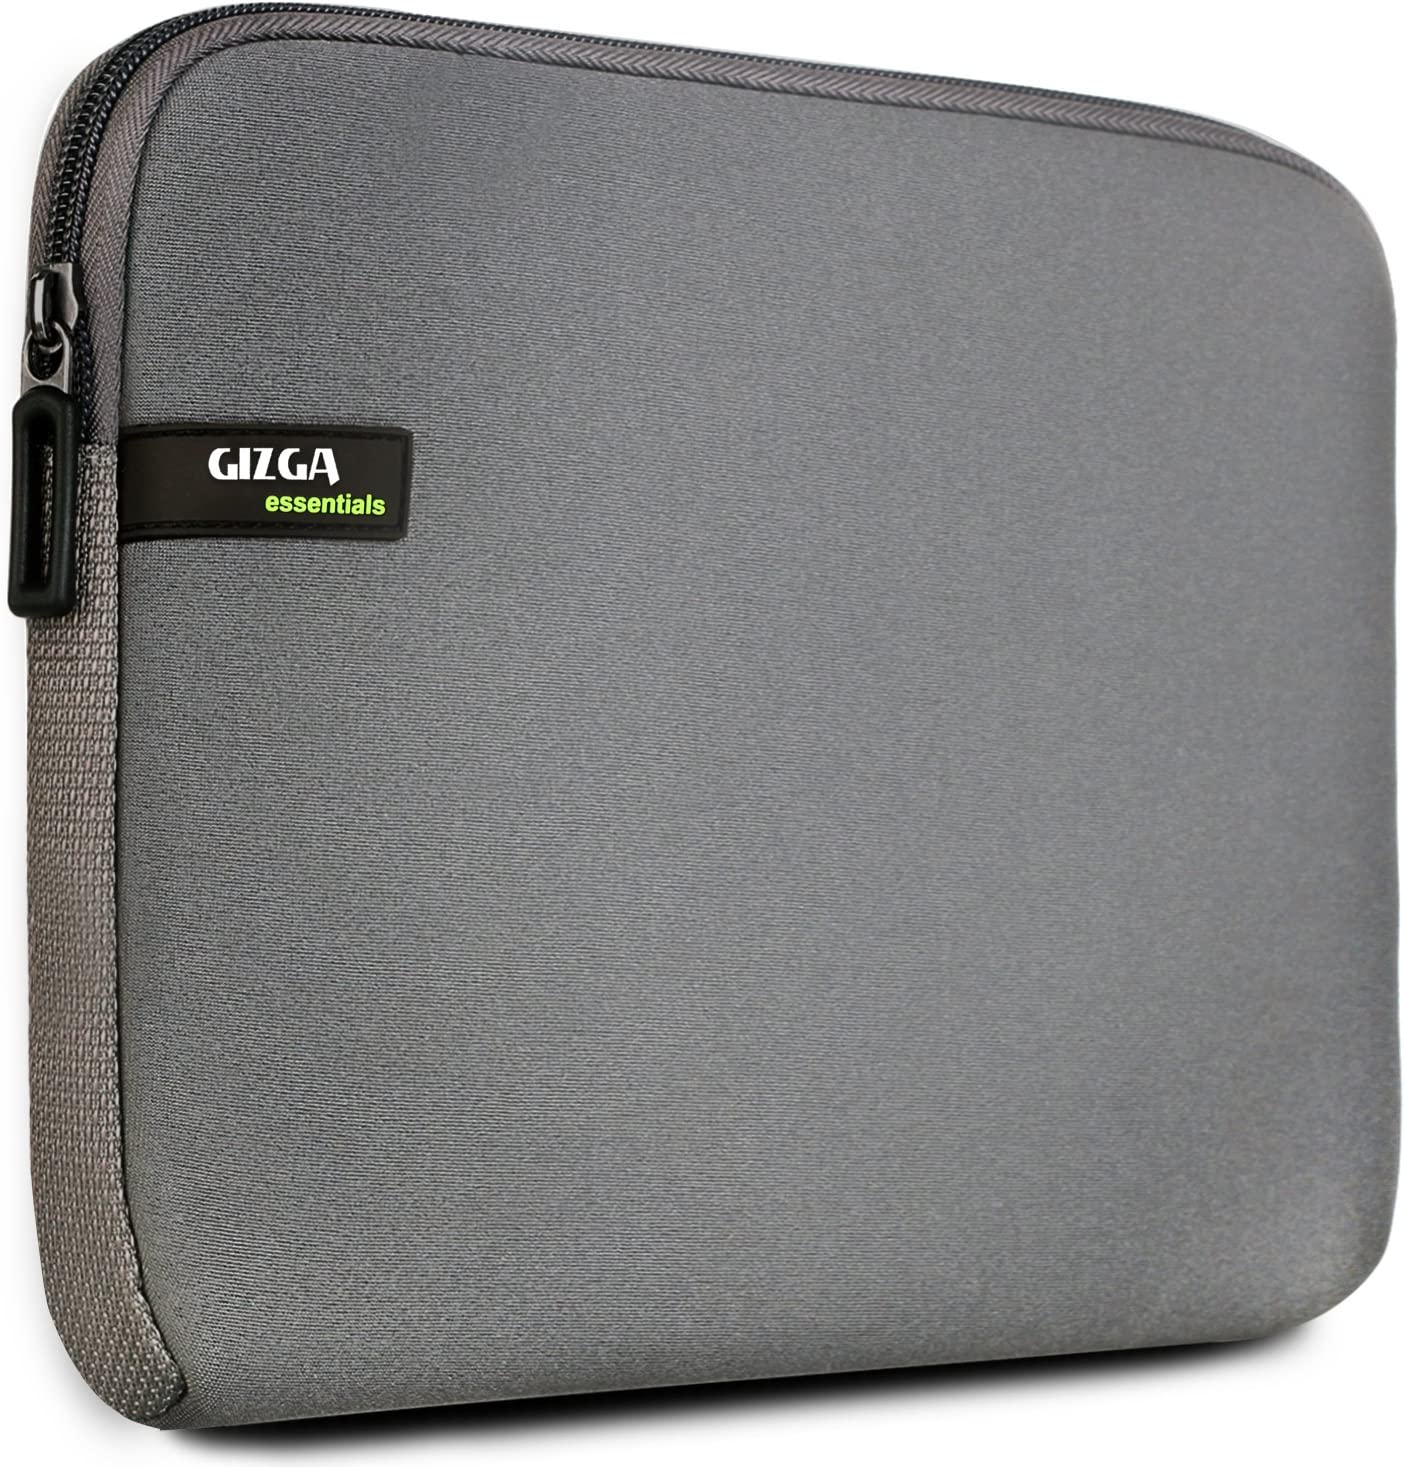 sold out Gizga Manufacturer direct delivery Essentials Laptop Sleeve 11.6-Inch